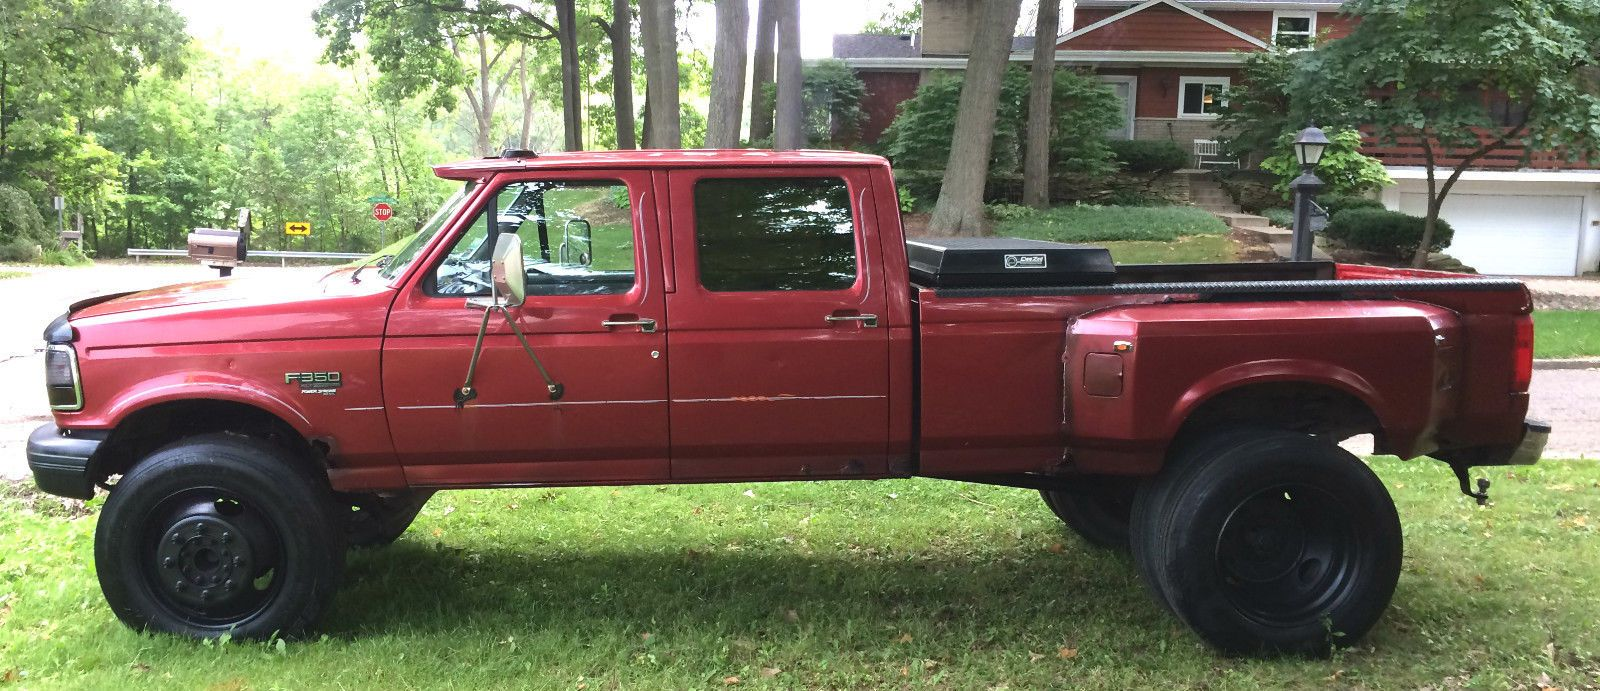 1997 Ford F 350 Xlt Crew Cab Pickup 4 Door Jacked Up Trucks Ford 4x4 Crew Cab